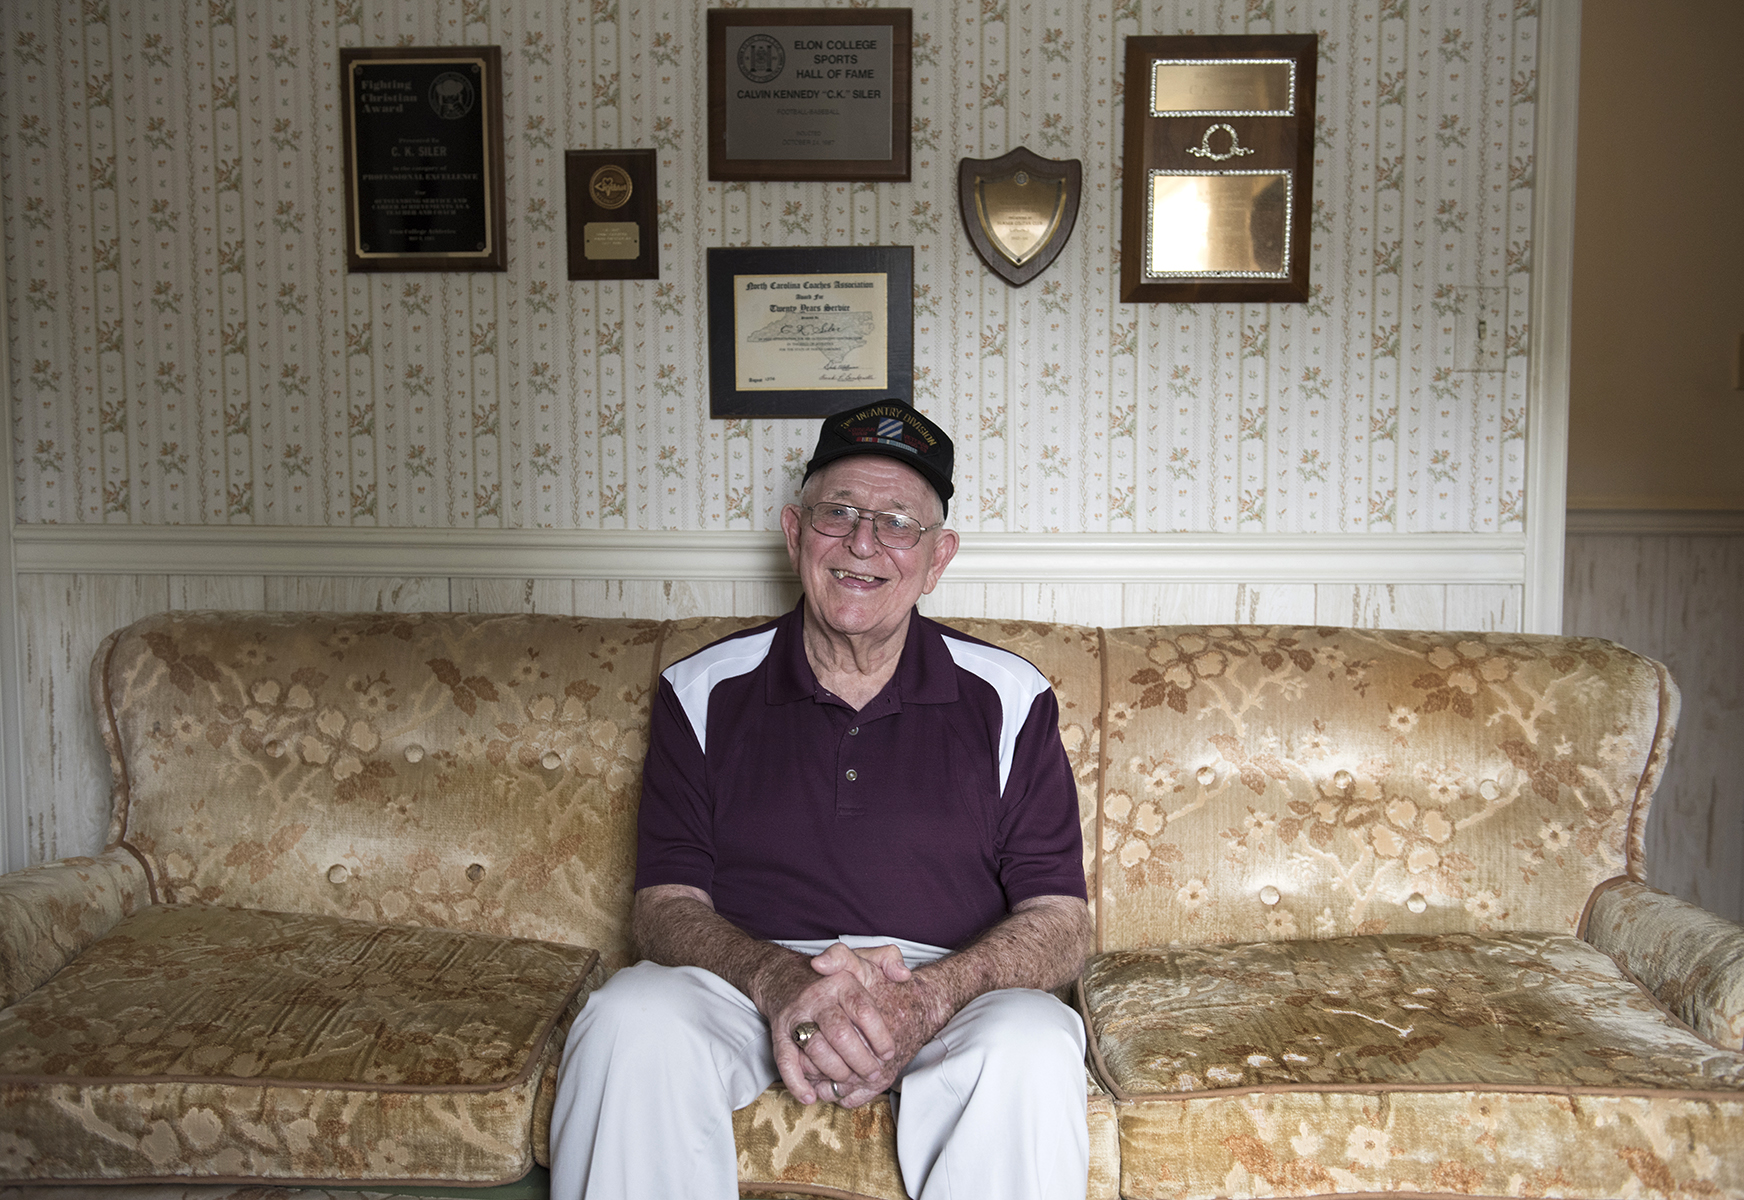 C.K. Siler is an Elon alum who served in the Korean War. He had a contract to play for the Red Sox but was drafted and never got to play professionally. After returning from war and finishing his degree, Siler coached for 36 years.